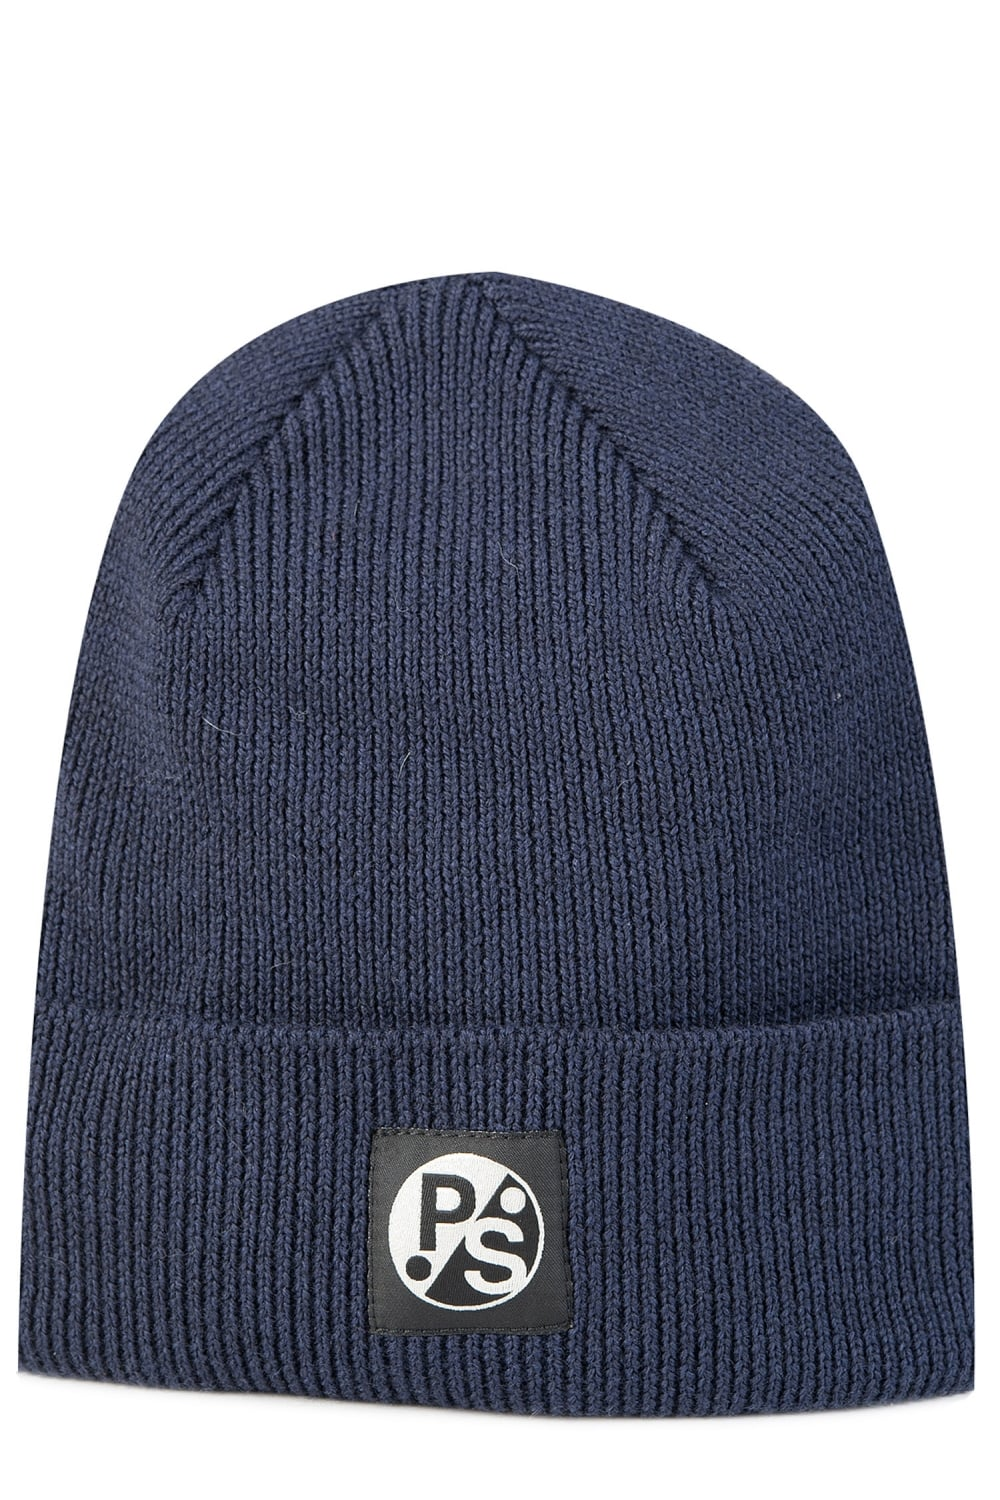 f27ca09e8be Paul Smith P.S Beanie Navy